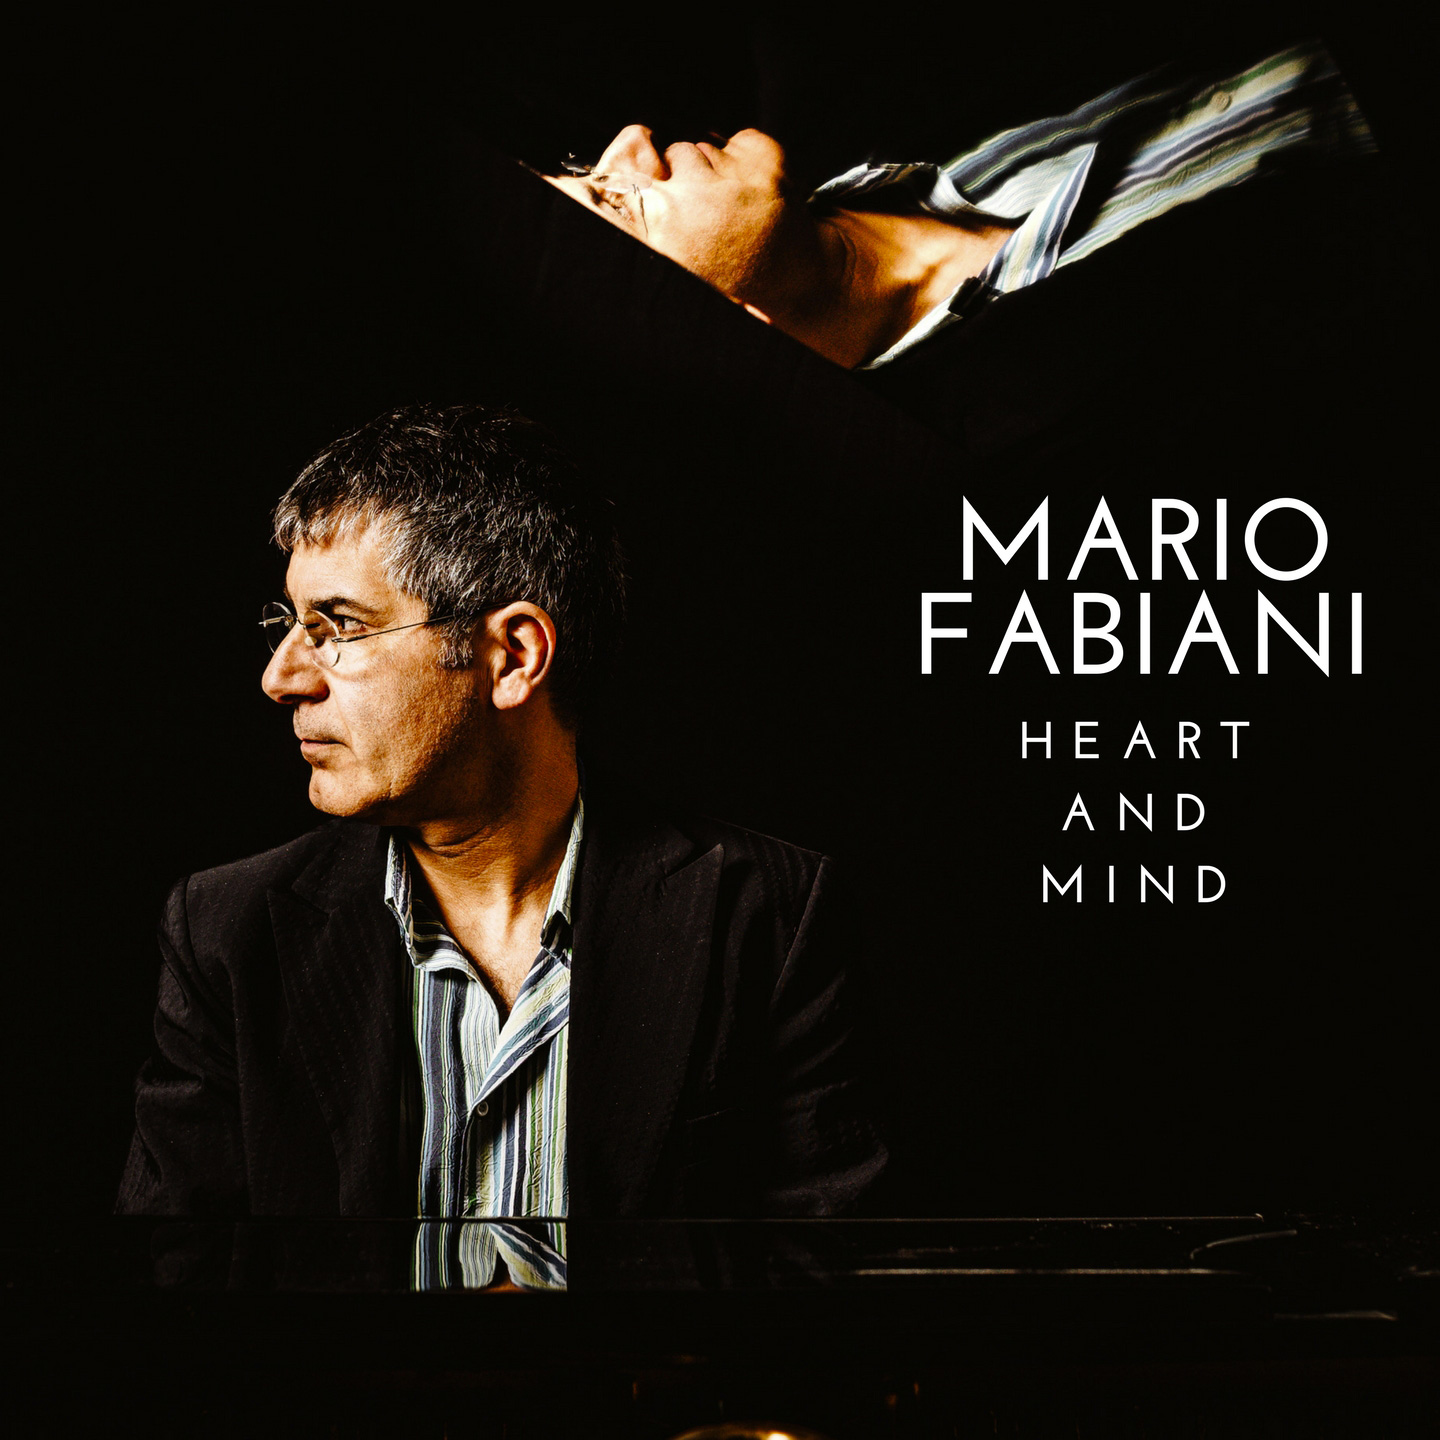 Mario-Fabiani-Heart-and-mind